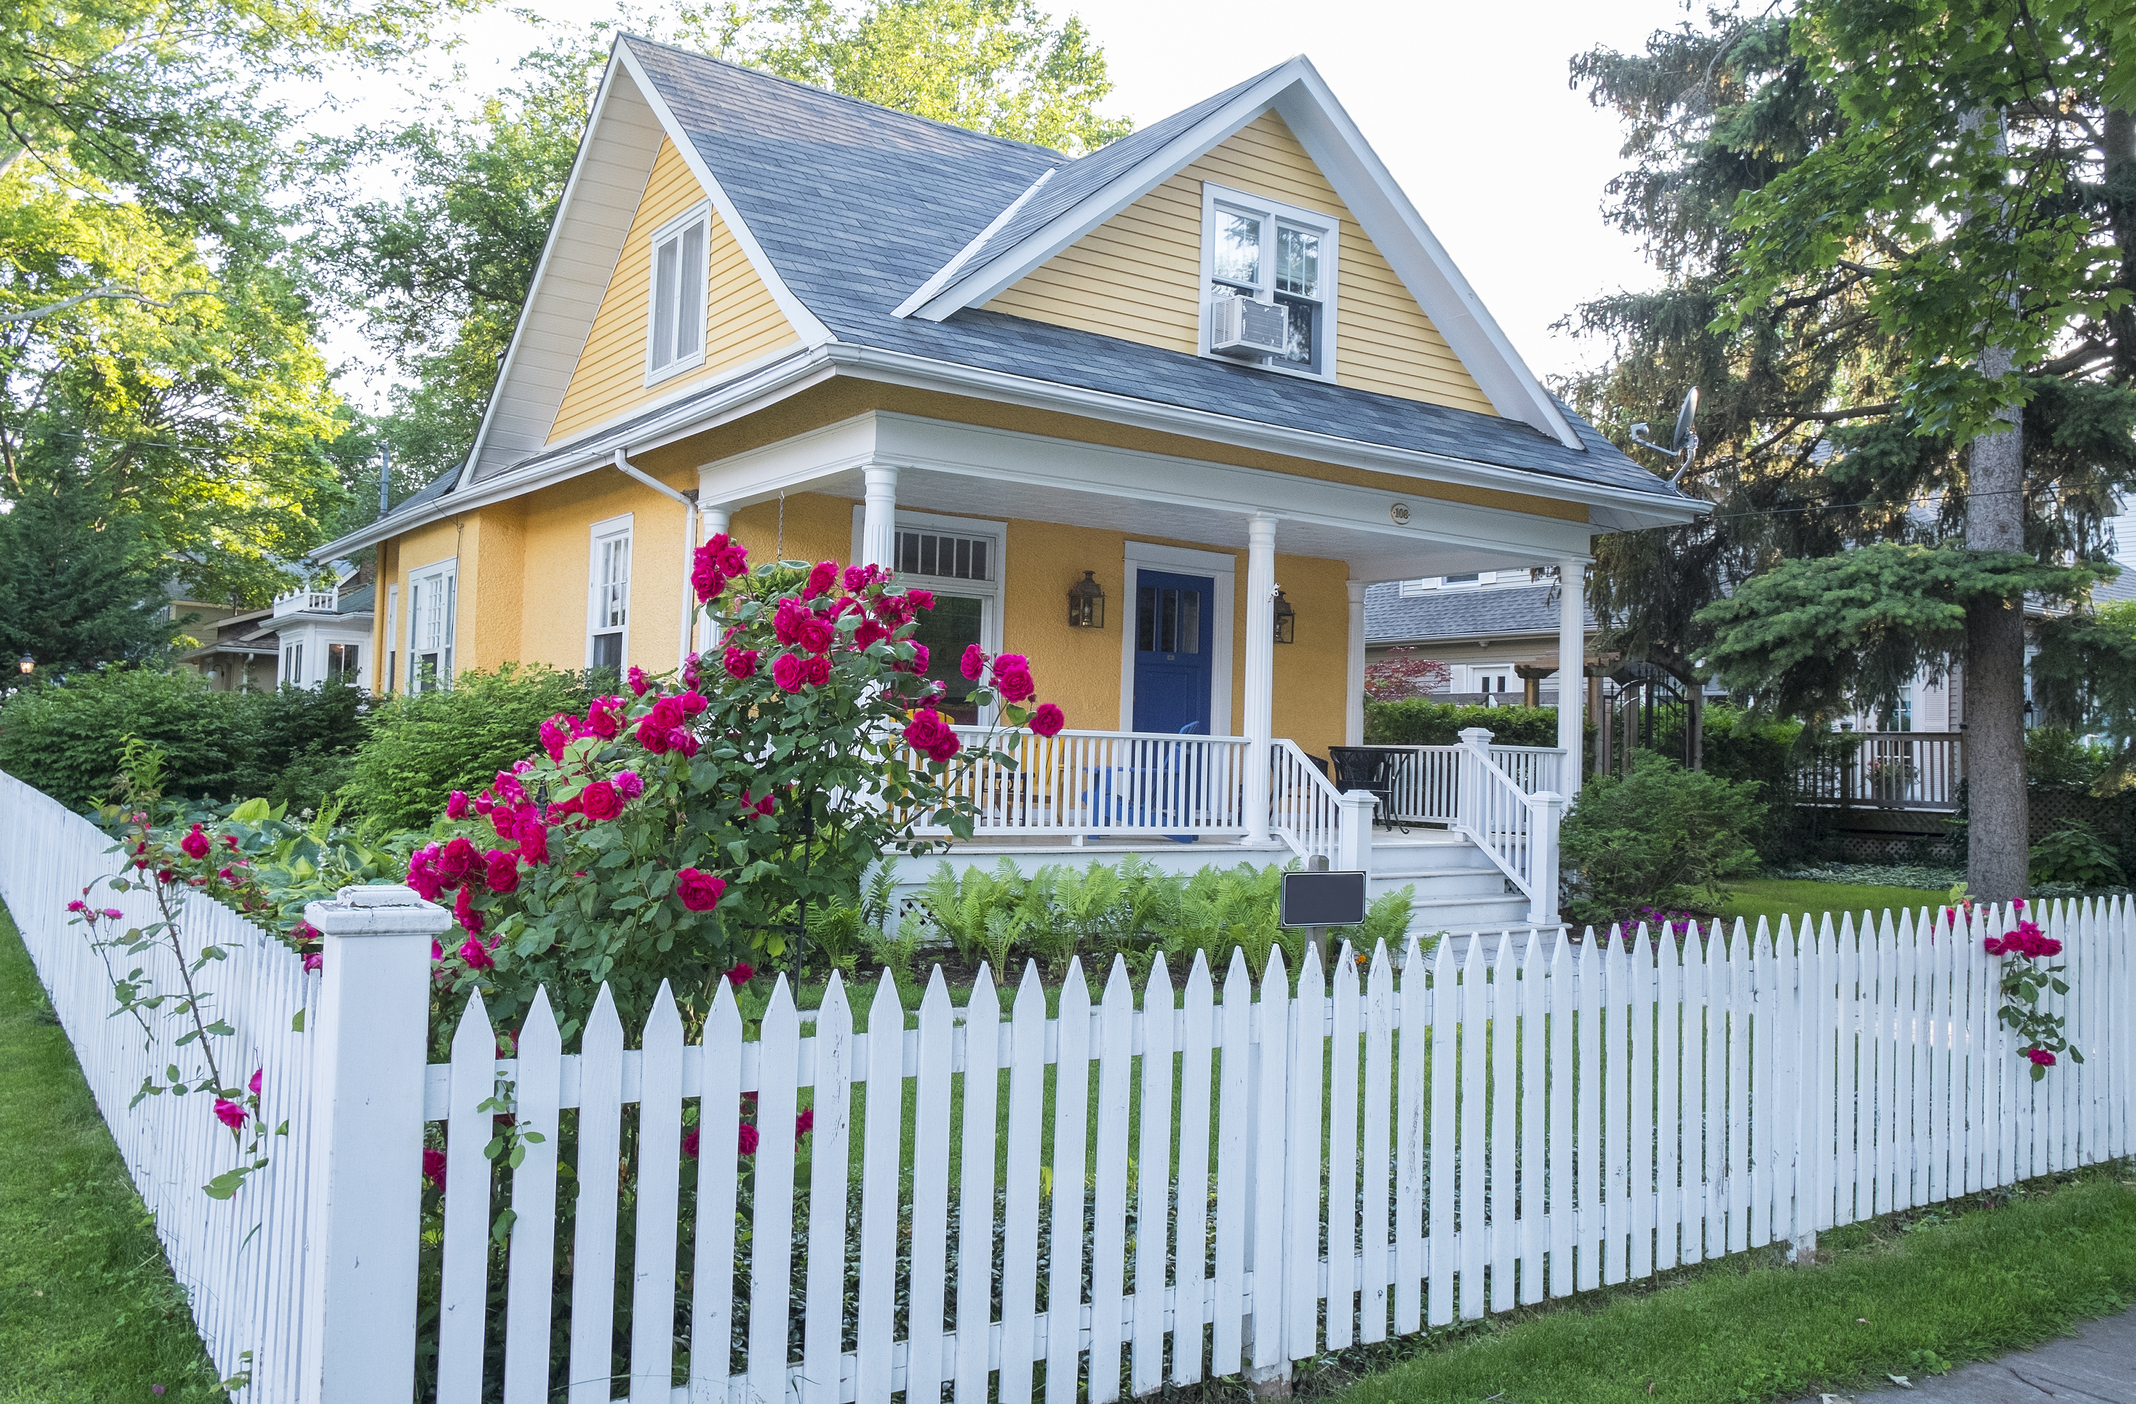 A yellow house with a white picket fence.